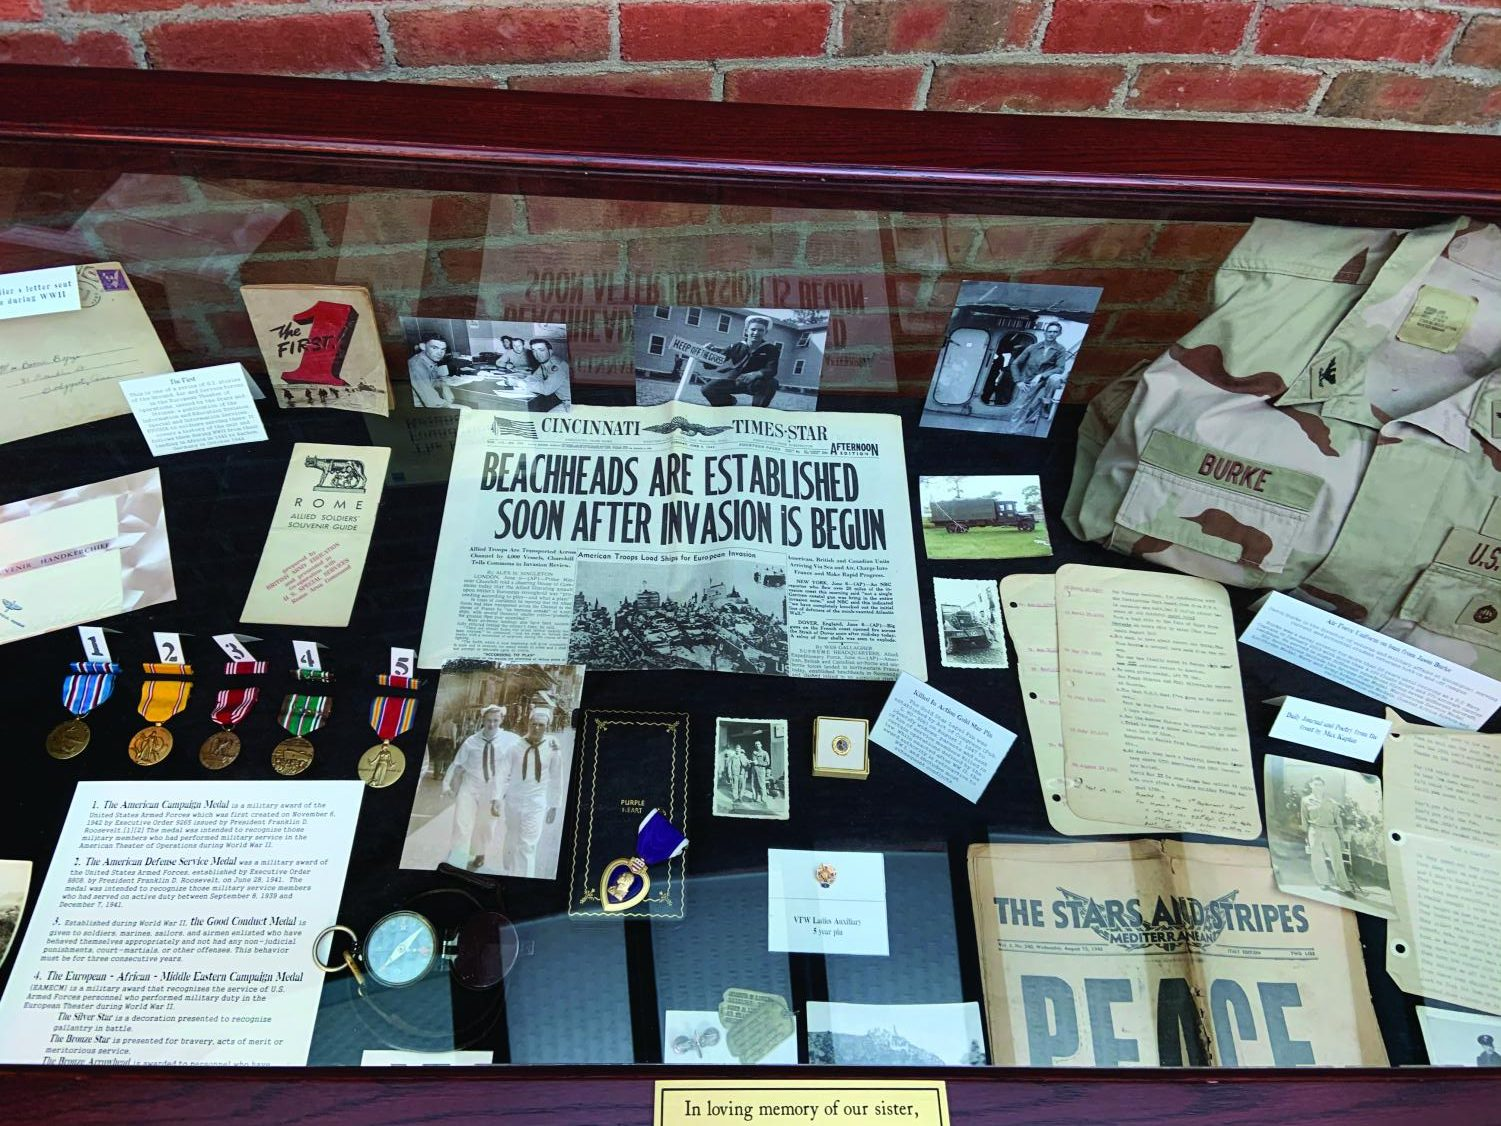 The exhibit displayed items provided by student veterans and O'Hare's family treasures.